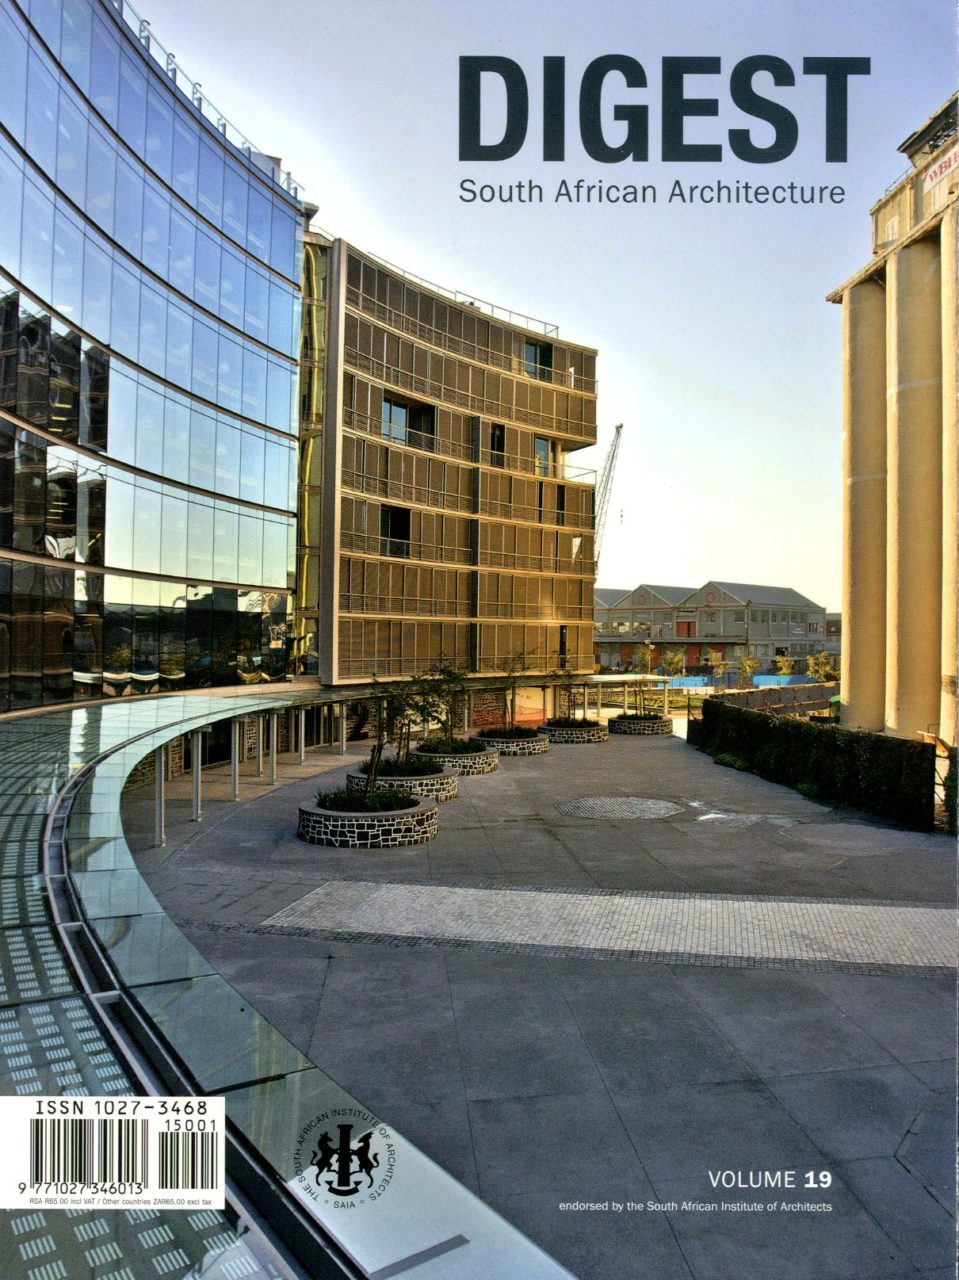 http://www.saota.com/wp-content/uploads/2018/01/Digest-of-SA-Architecture_Volume-19_2014-.jpg